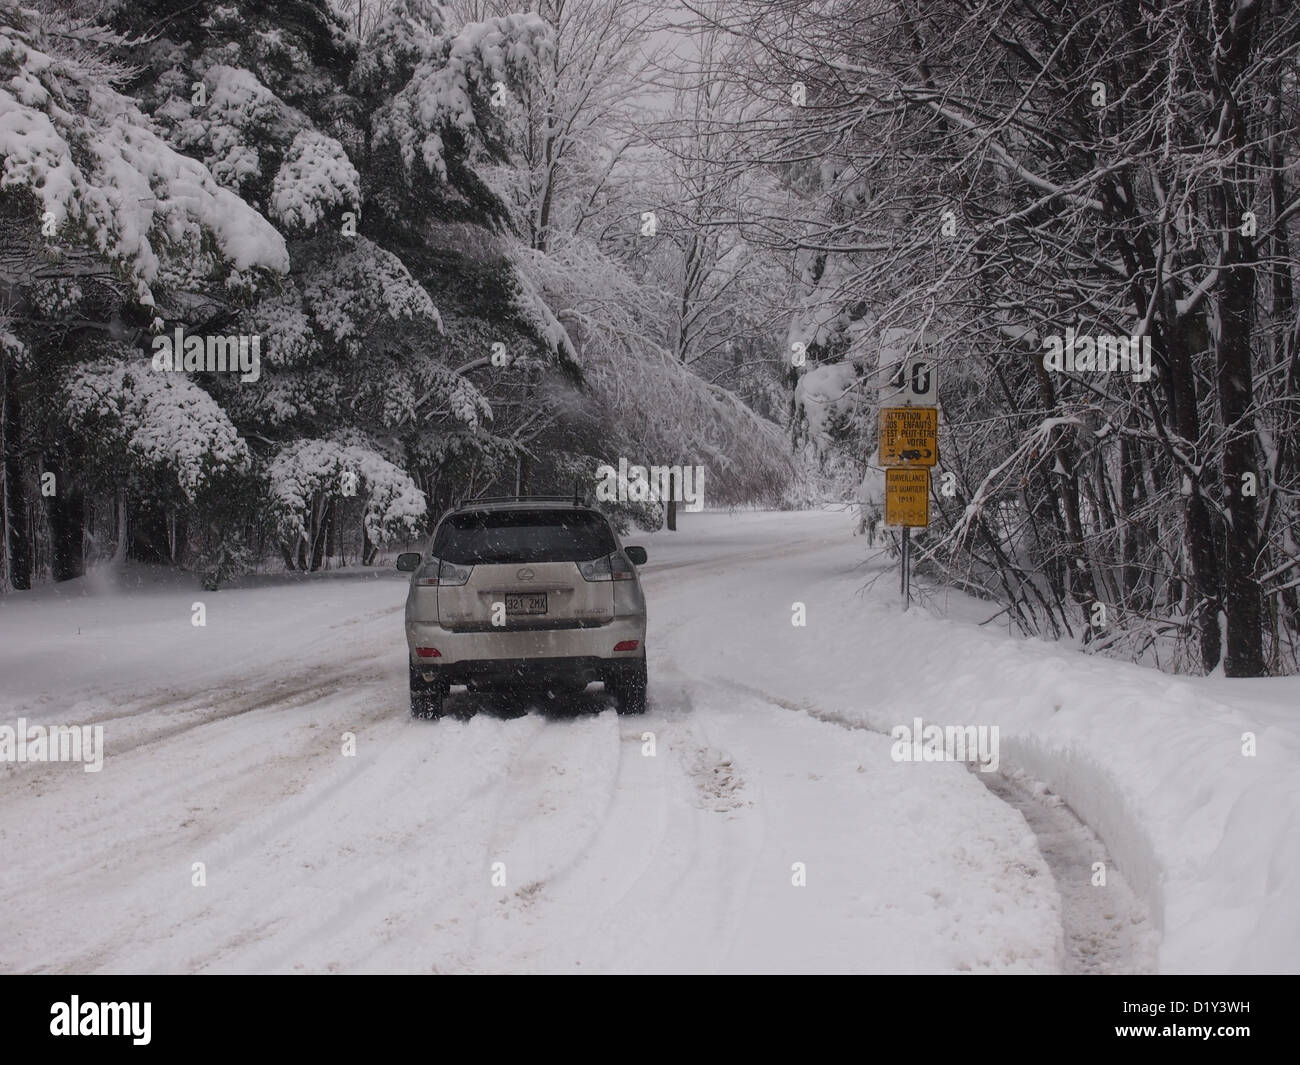 Car driving on winter snowy roads - Stock Image